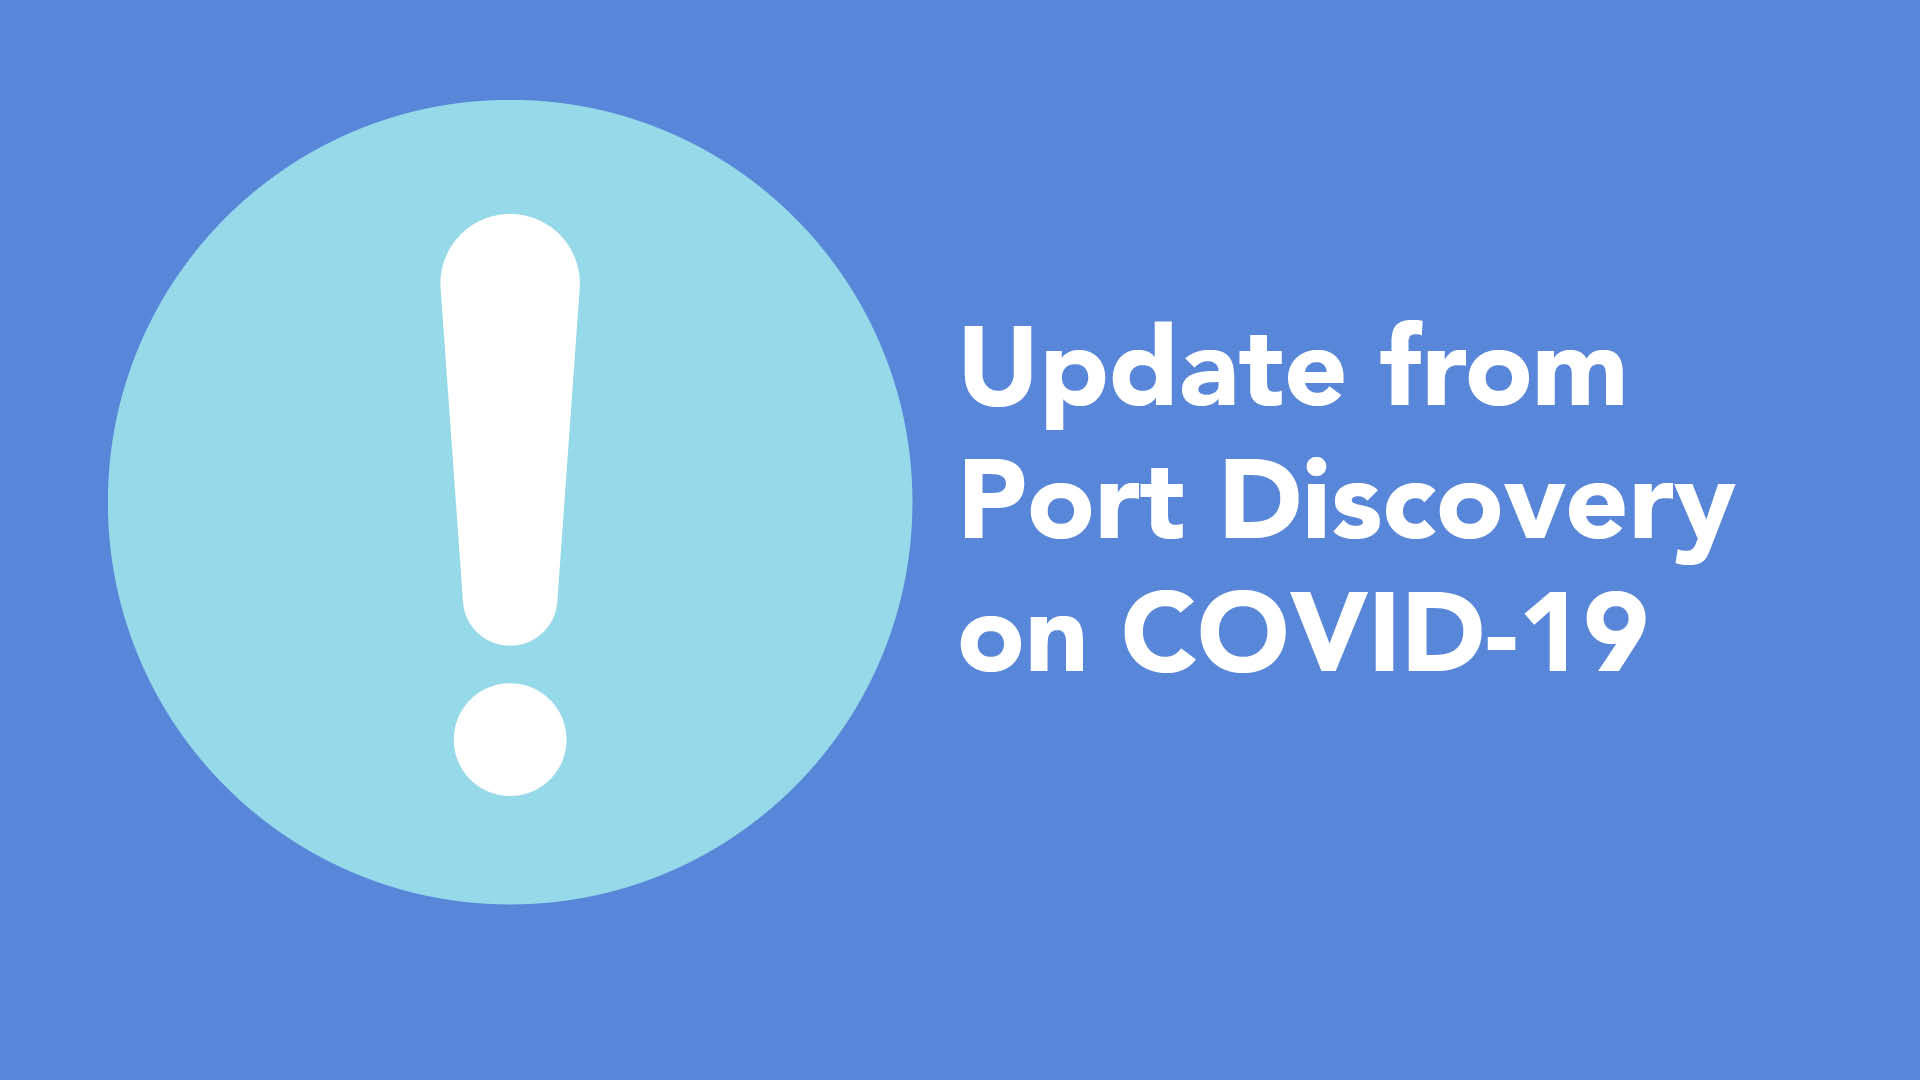 An update from PDCM on Coronavirus